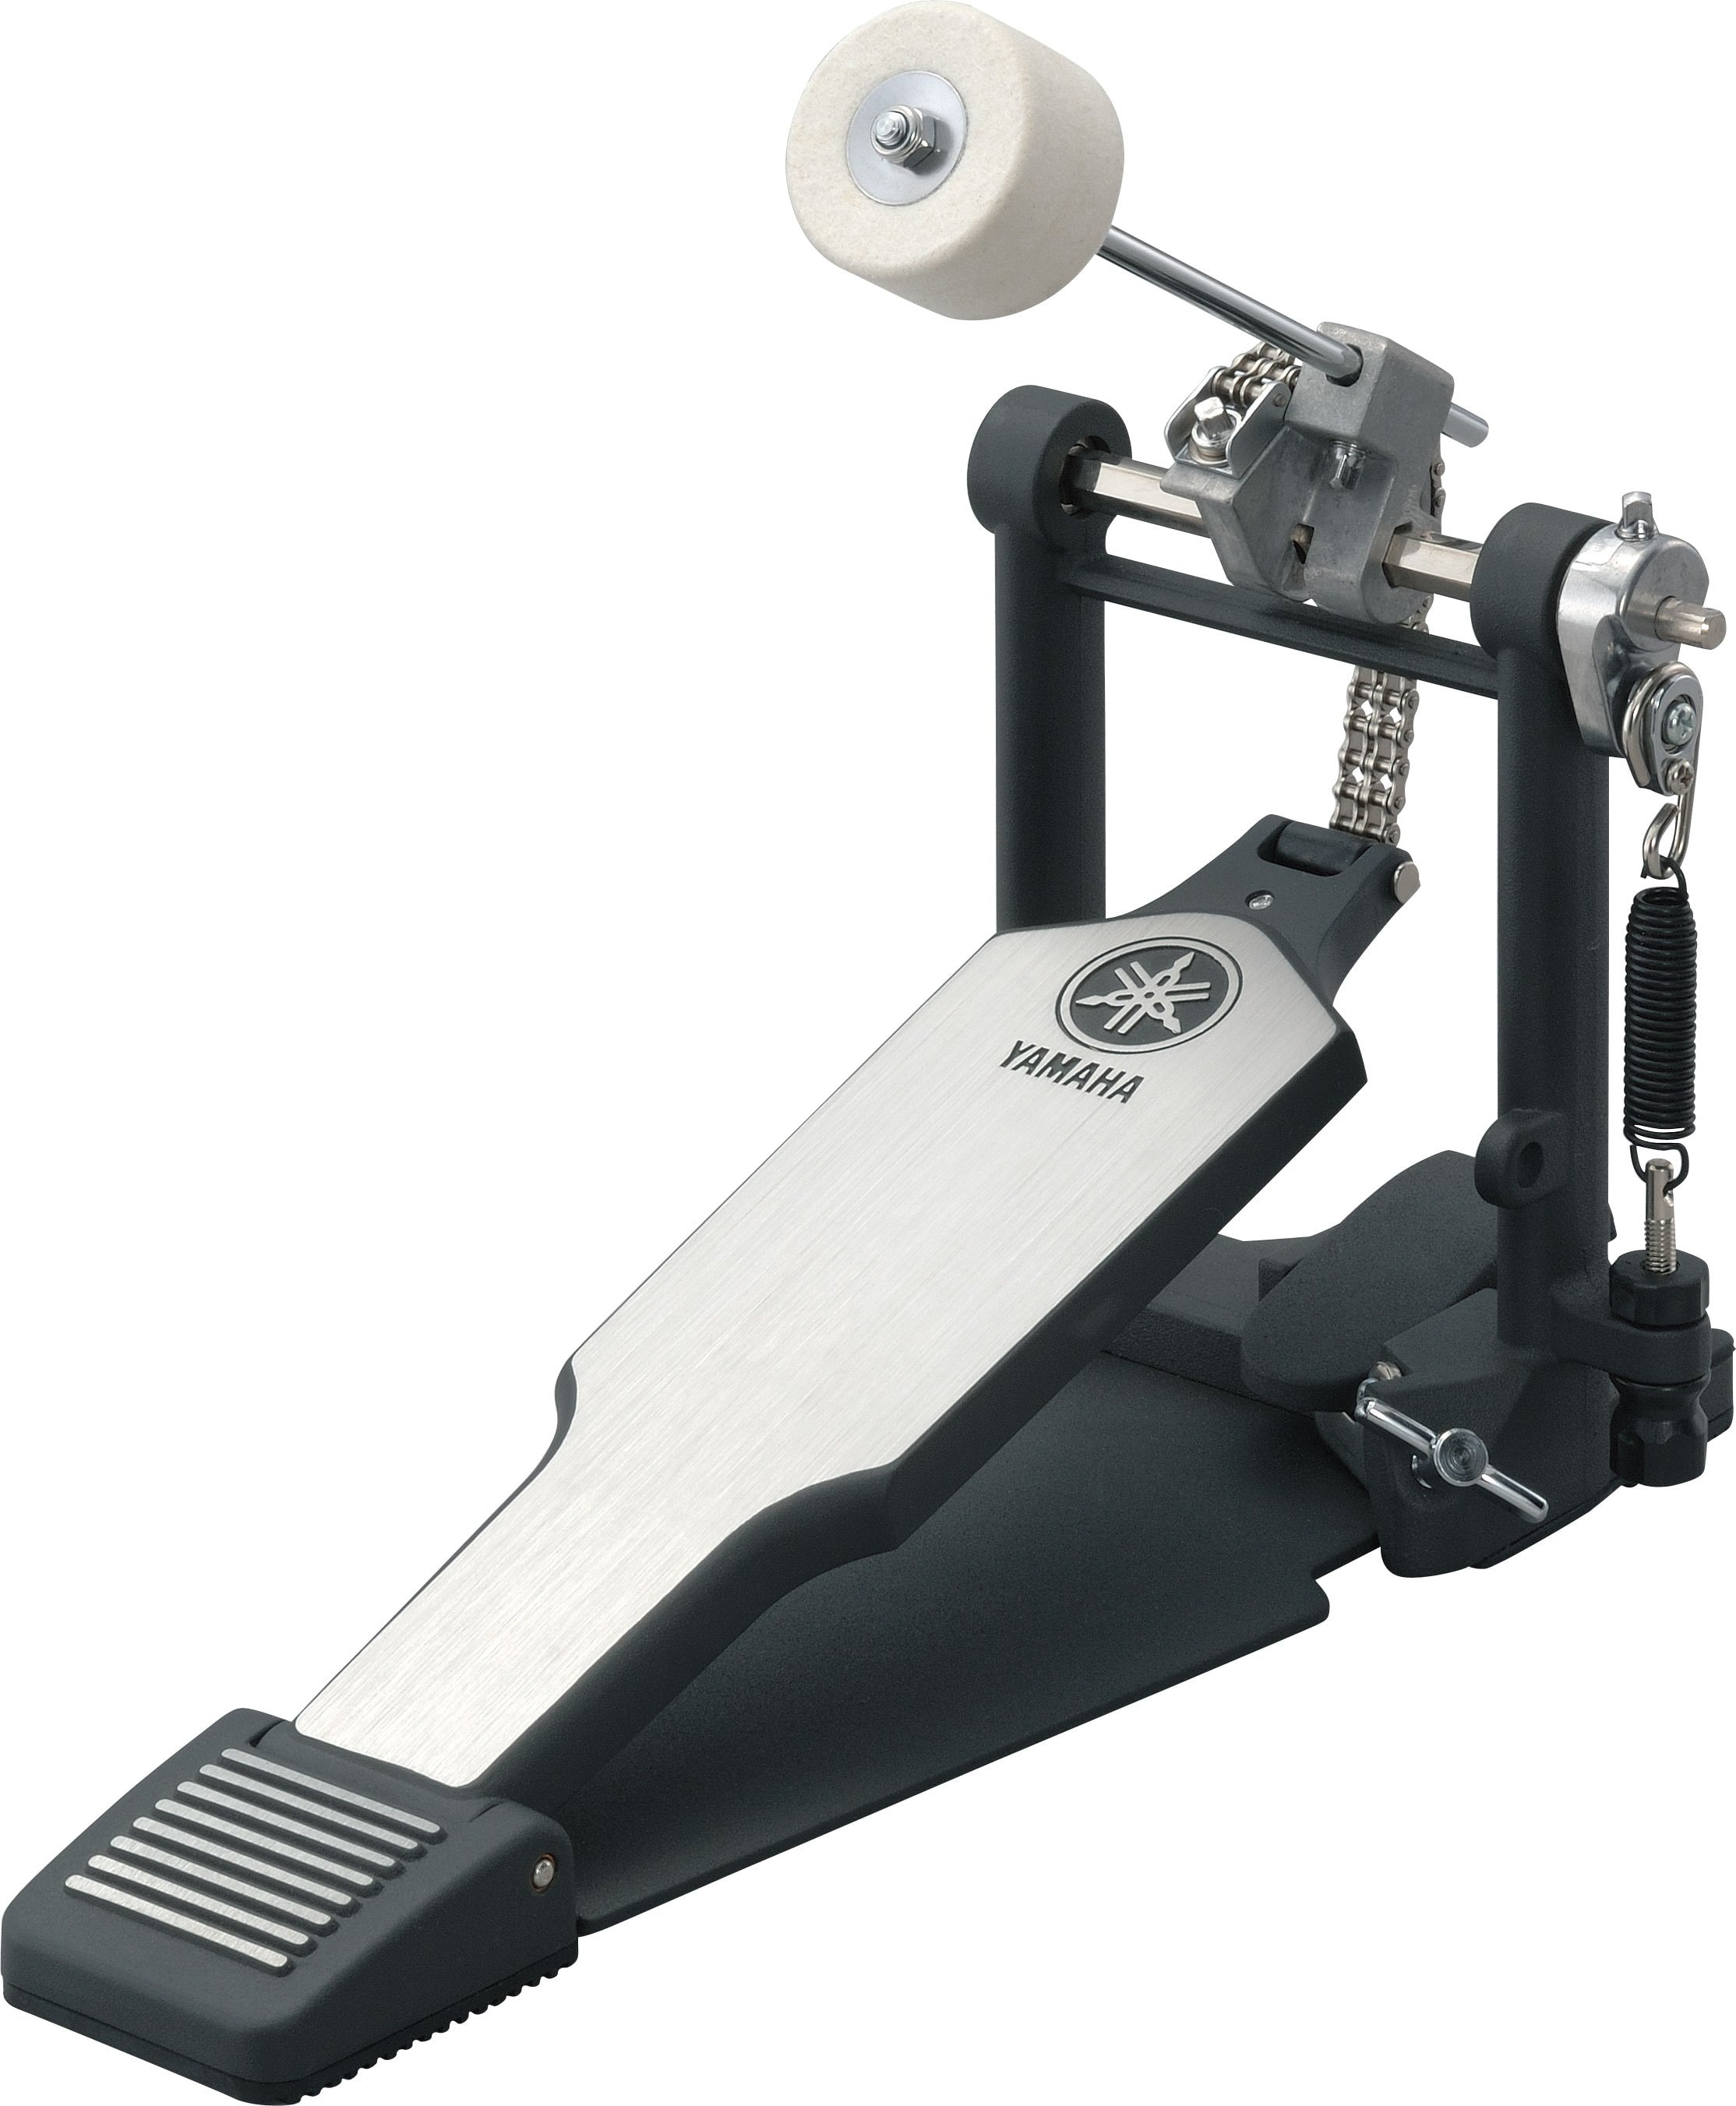 Bass Drum Pedals - Overview - Hardware - Acoustic Drums